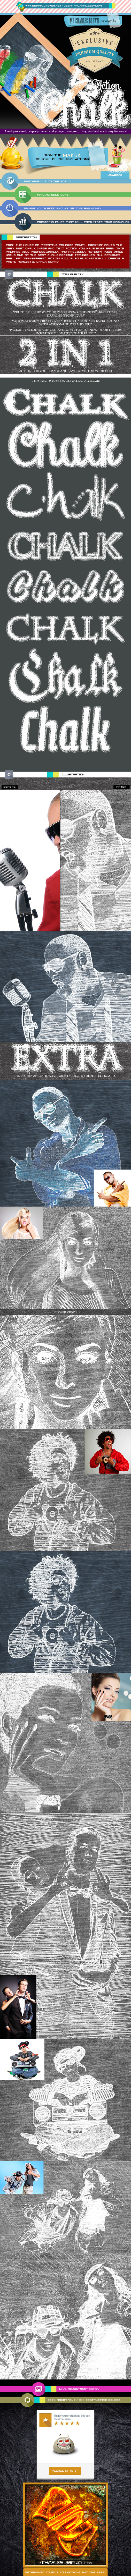 Pure Art Chalk Drawing 2 - Photo Effects Actions